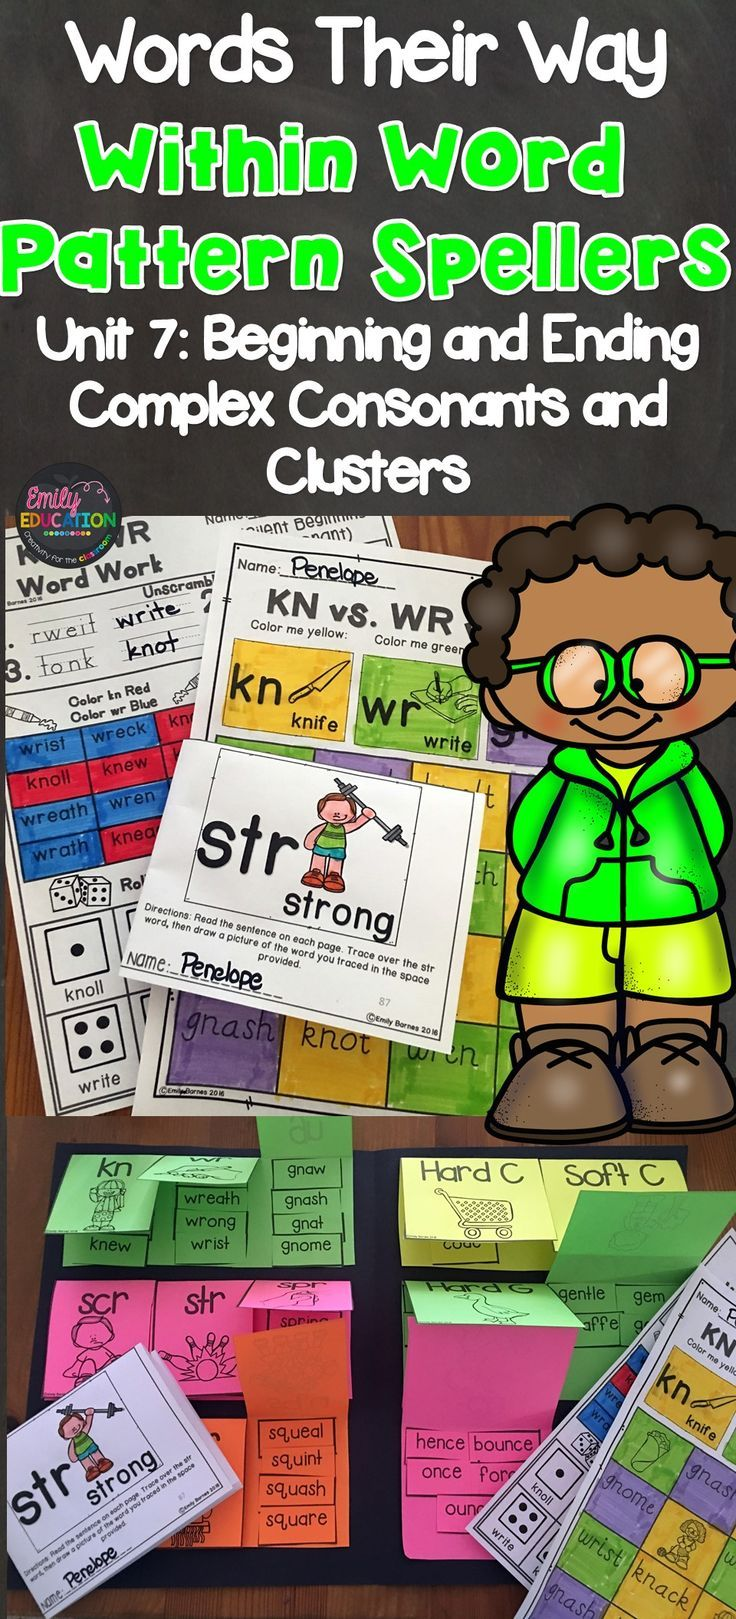 Words Their Way Within Word Pattern Spellers Unit 7: Beginning and Ending Complex Consonants and Consonant Clusters